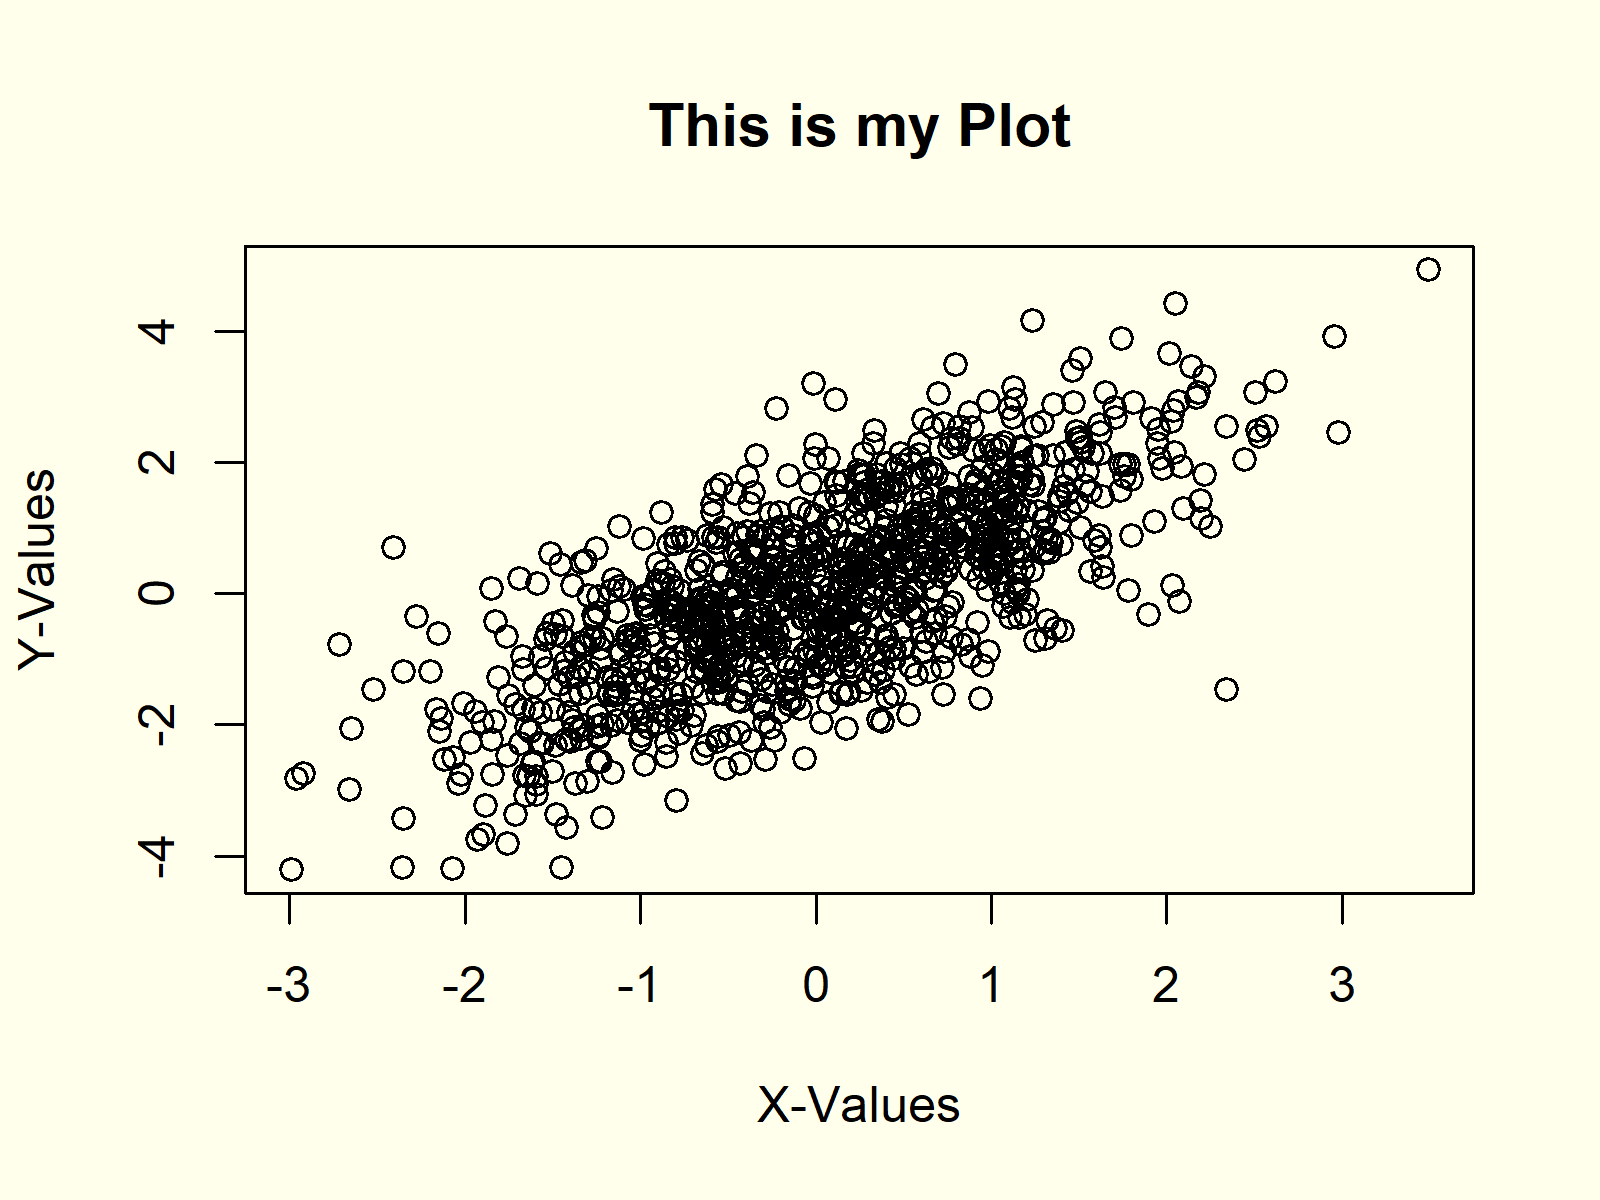 Fifth example for plot function in r